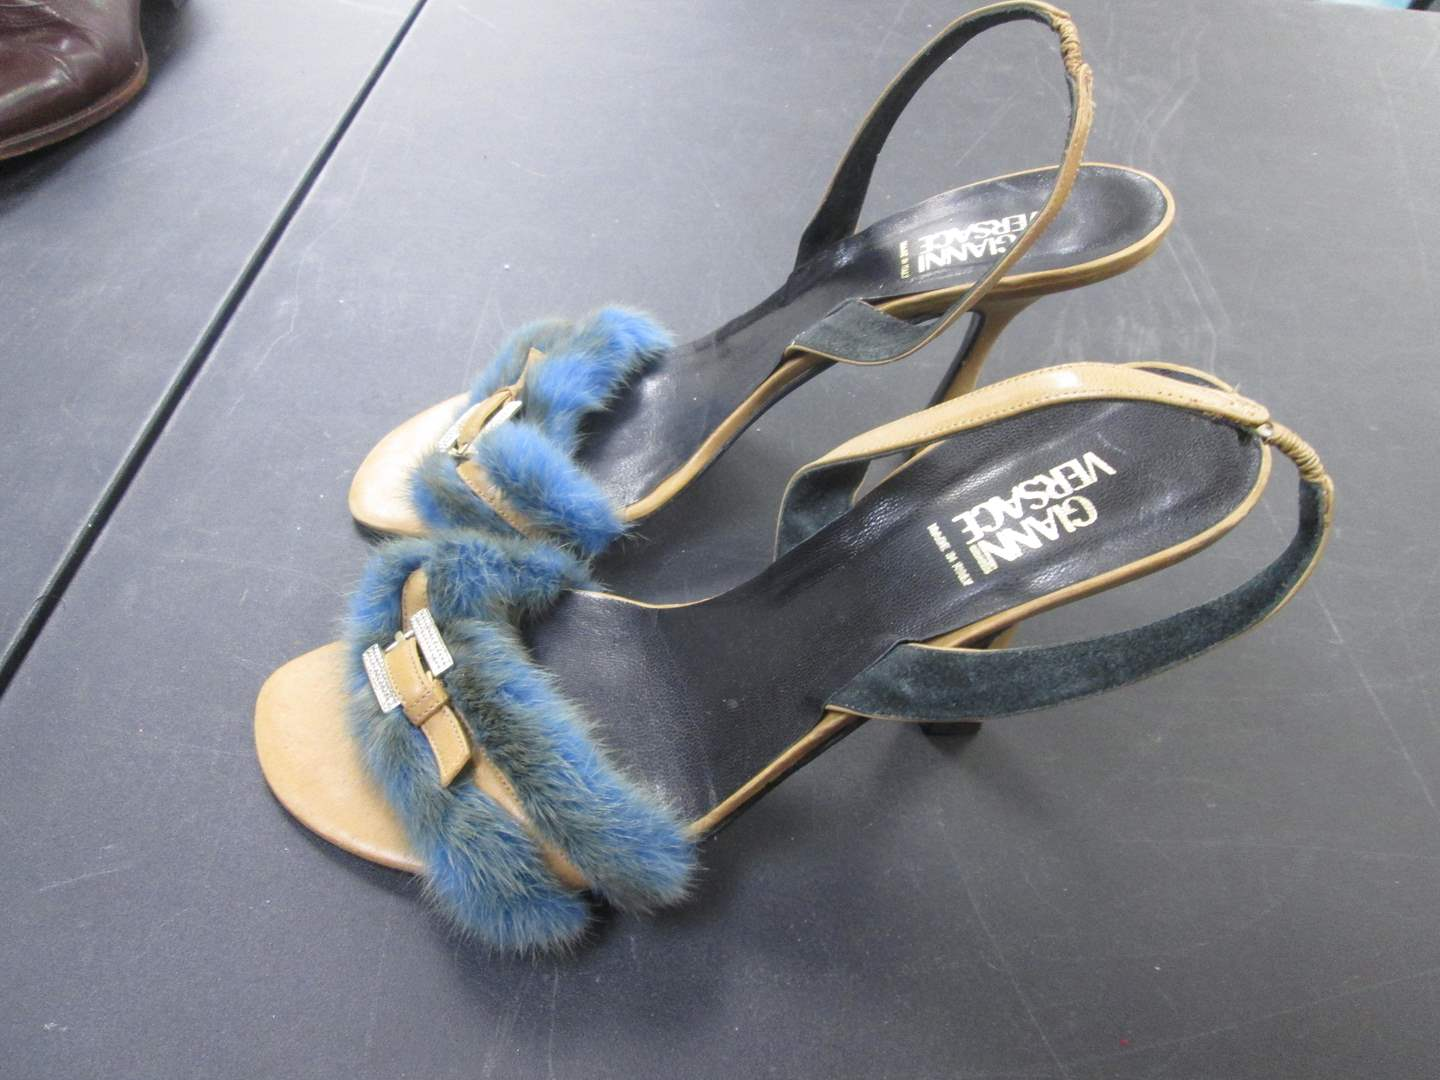 Lot # 59 - Gianni Versace Fur-Trimmed Heels, Italy Size 39 (main image)